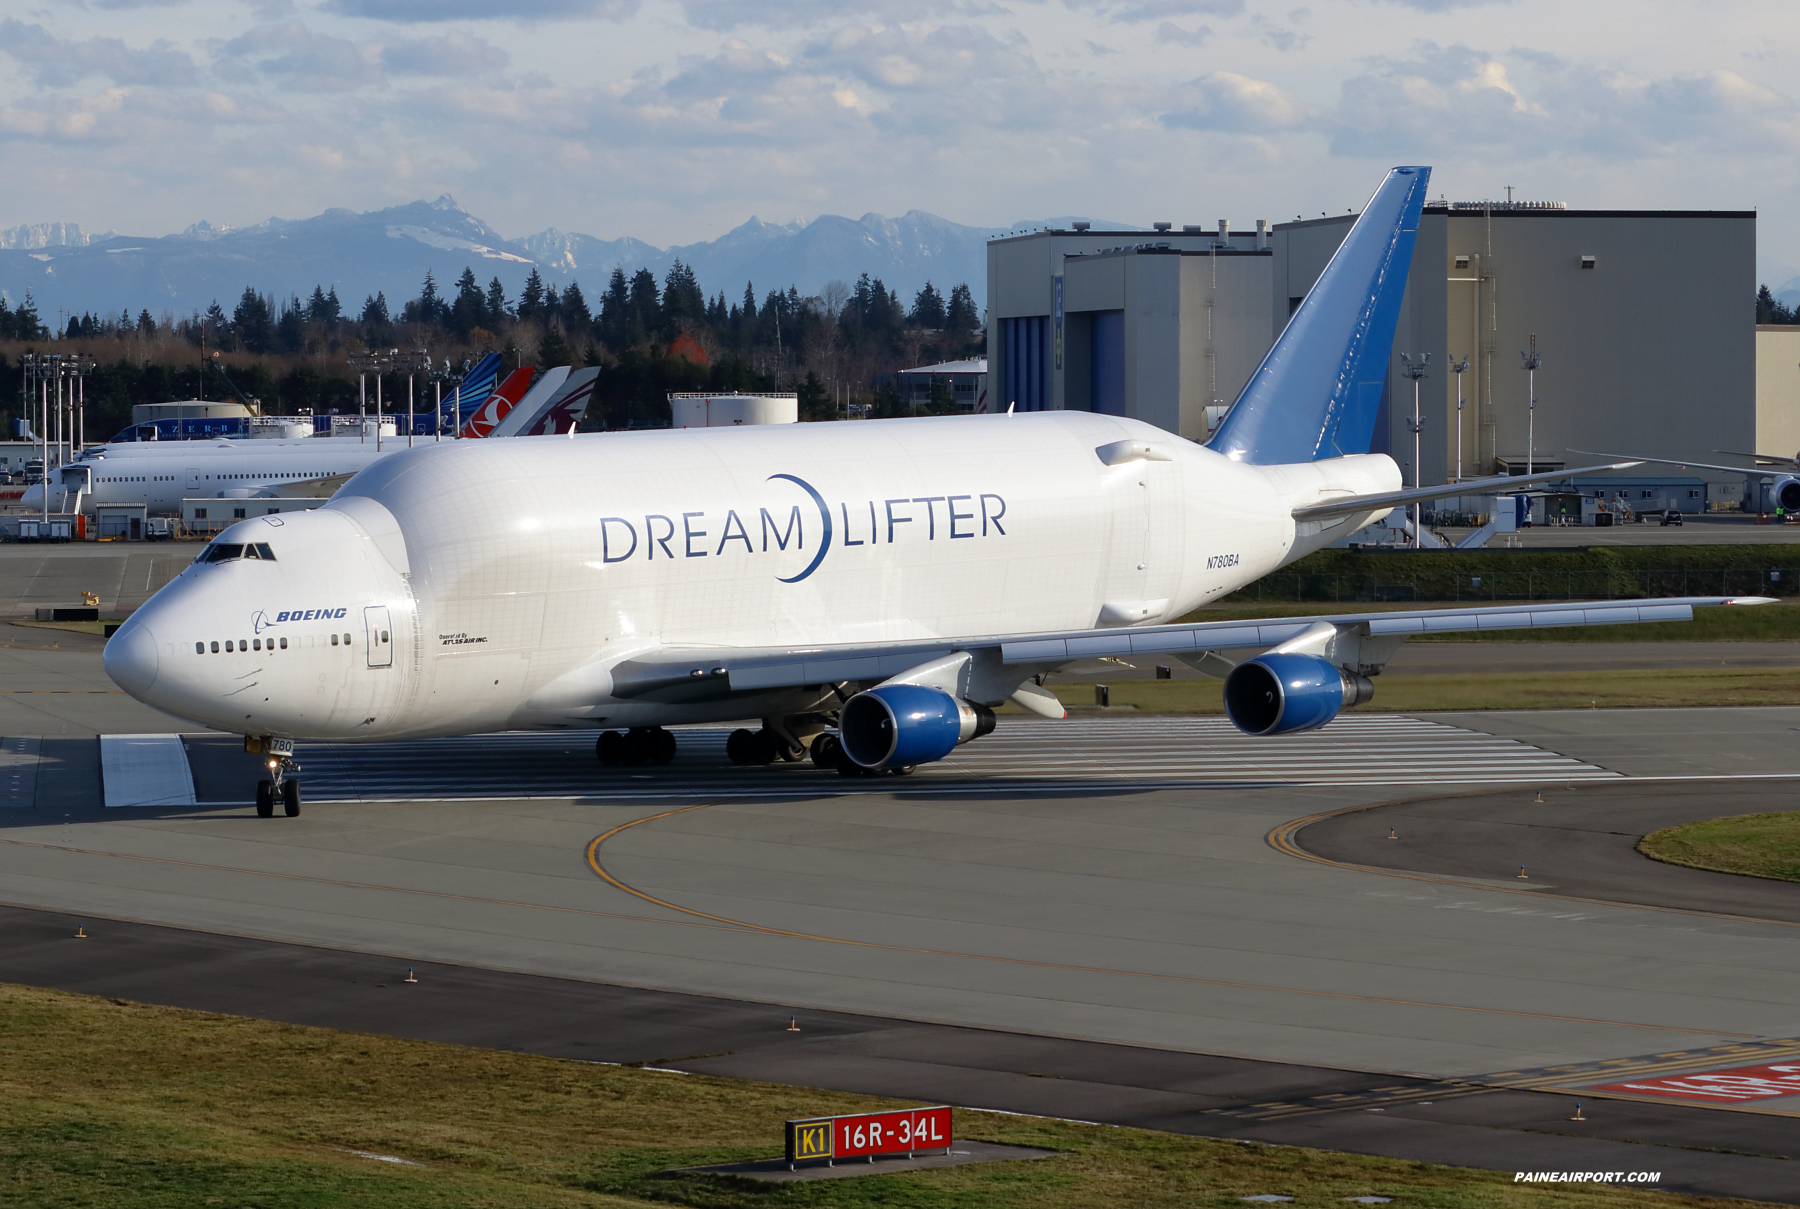 LCF N780BA at Paine Field